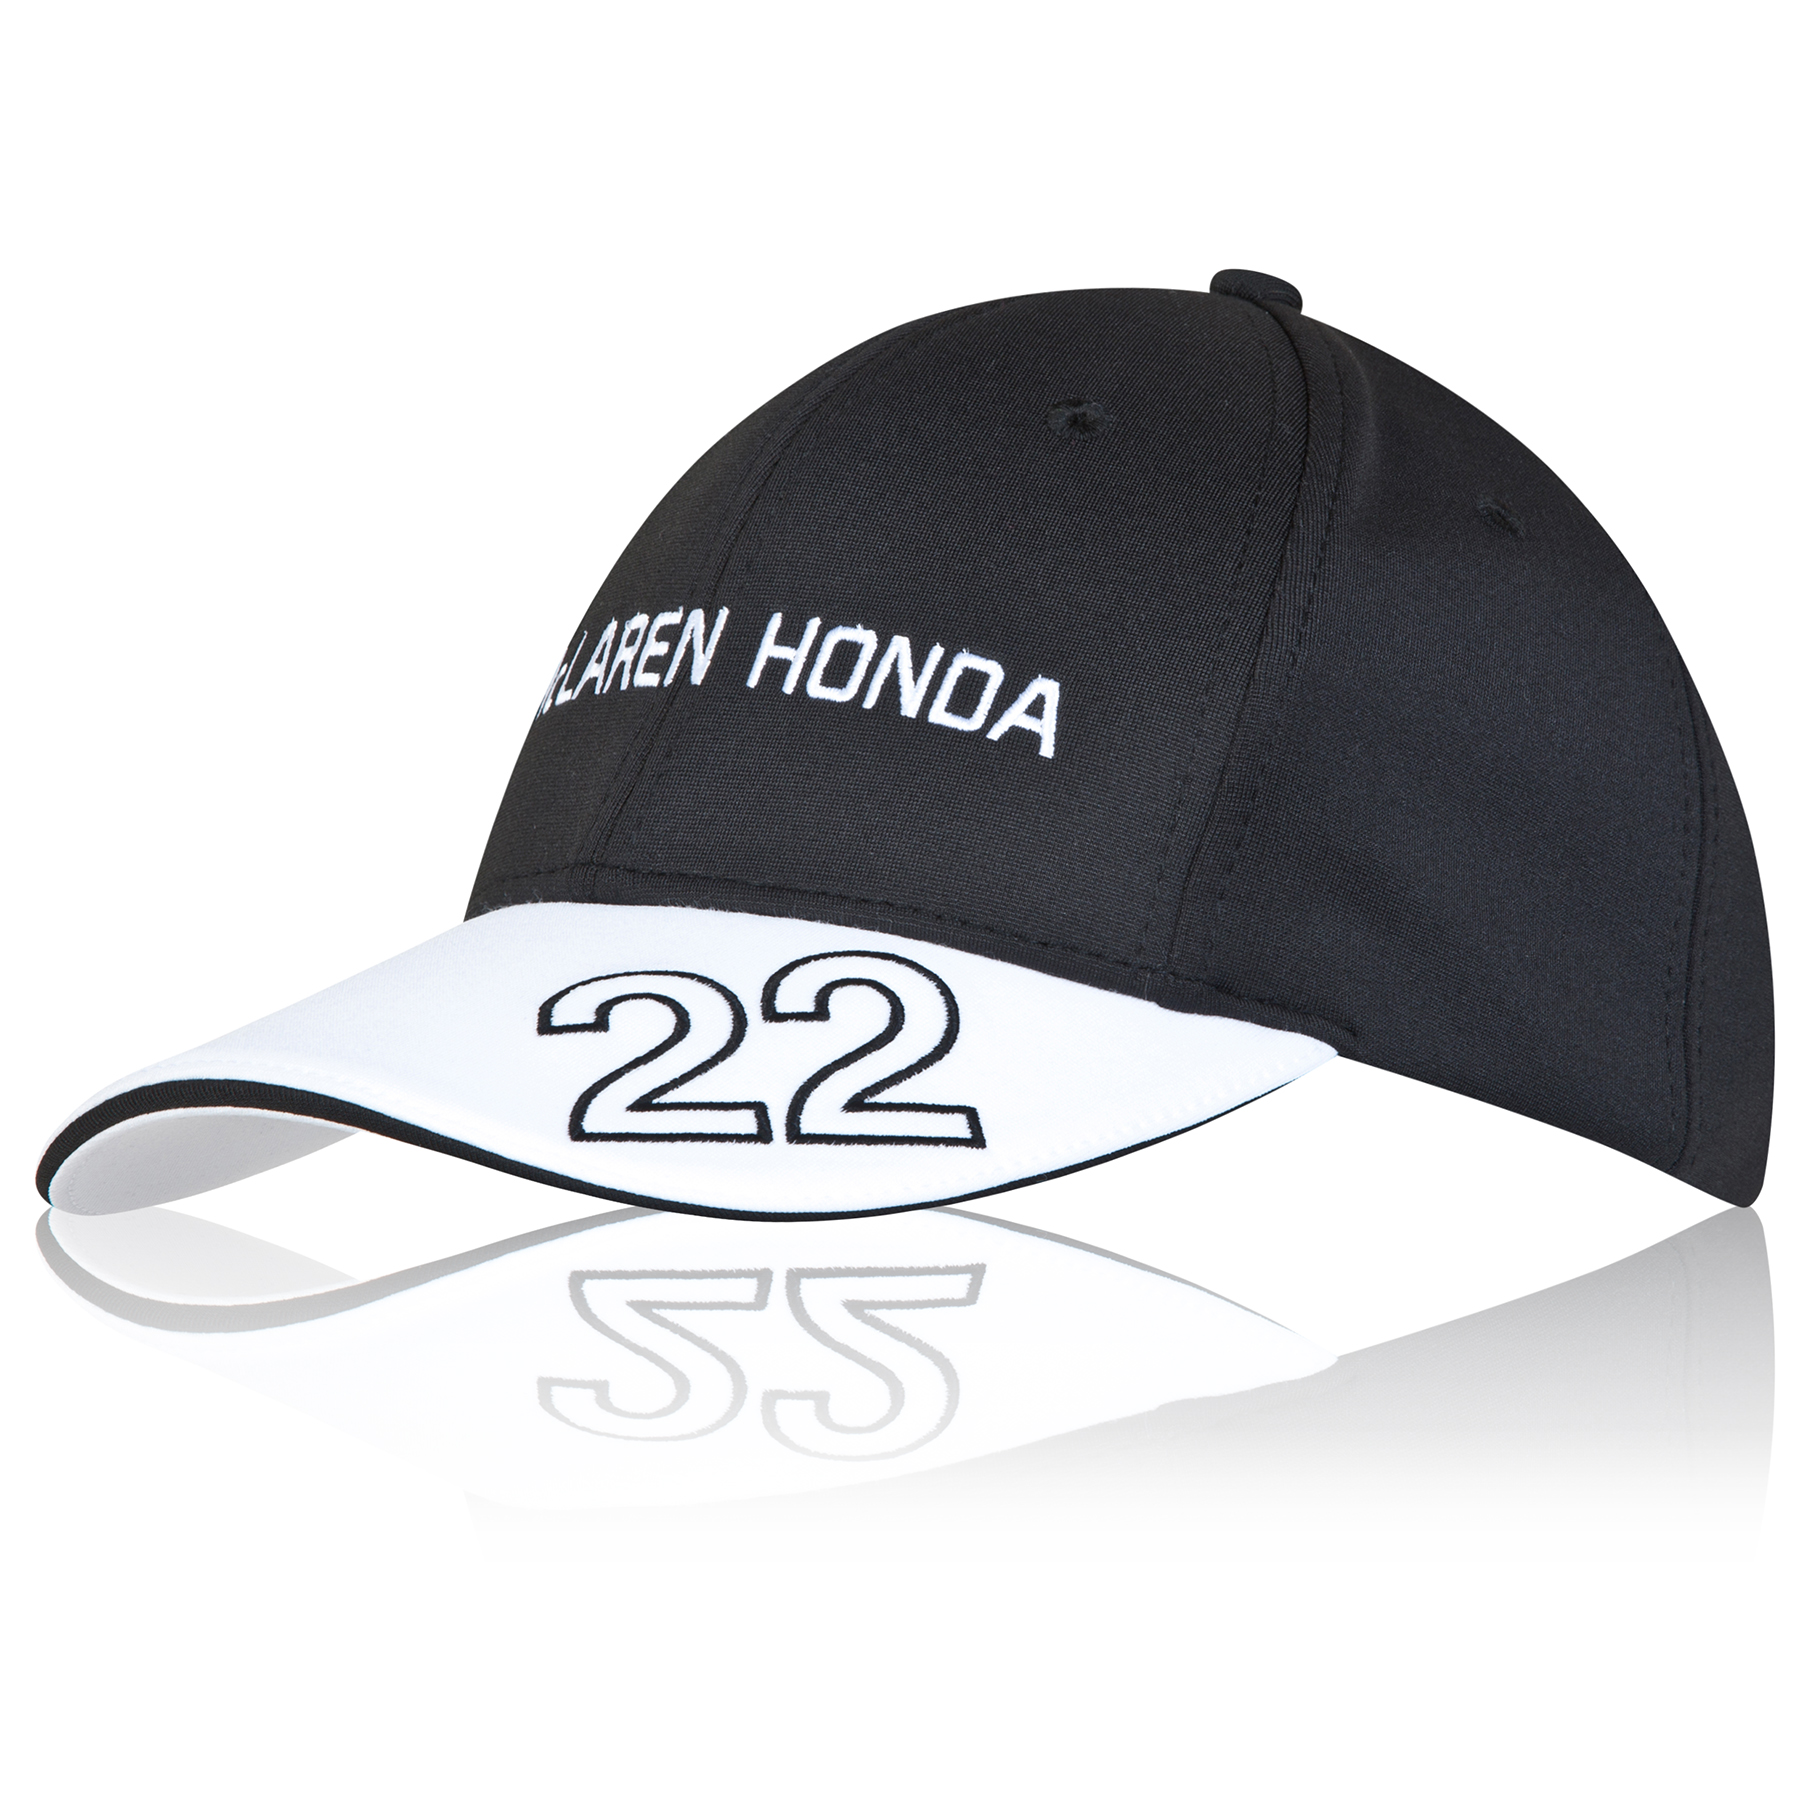 McLaren Honda Official Jenson Button Cap Kids Black